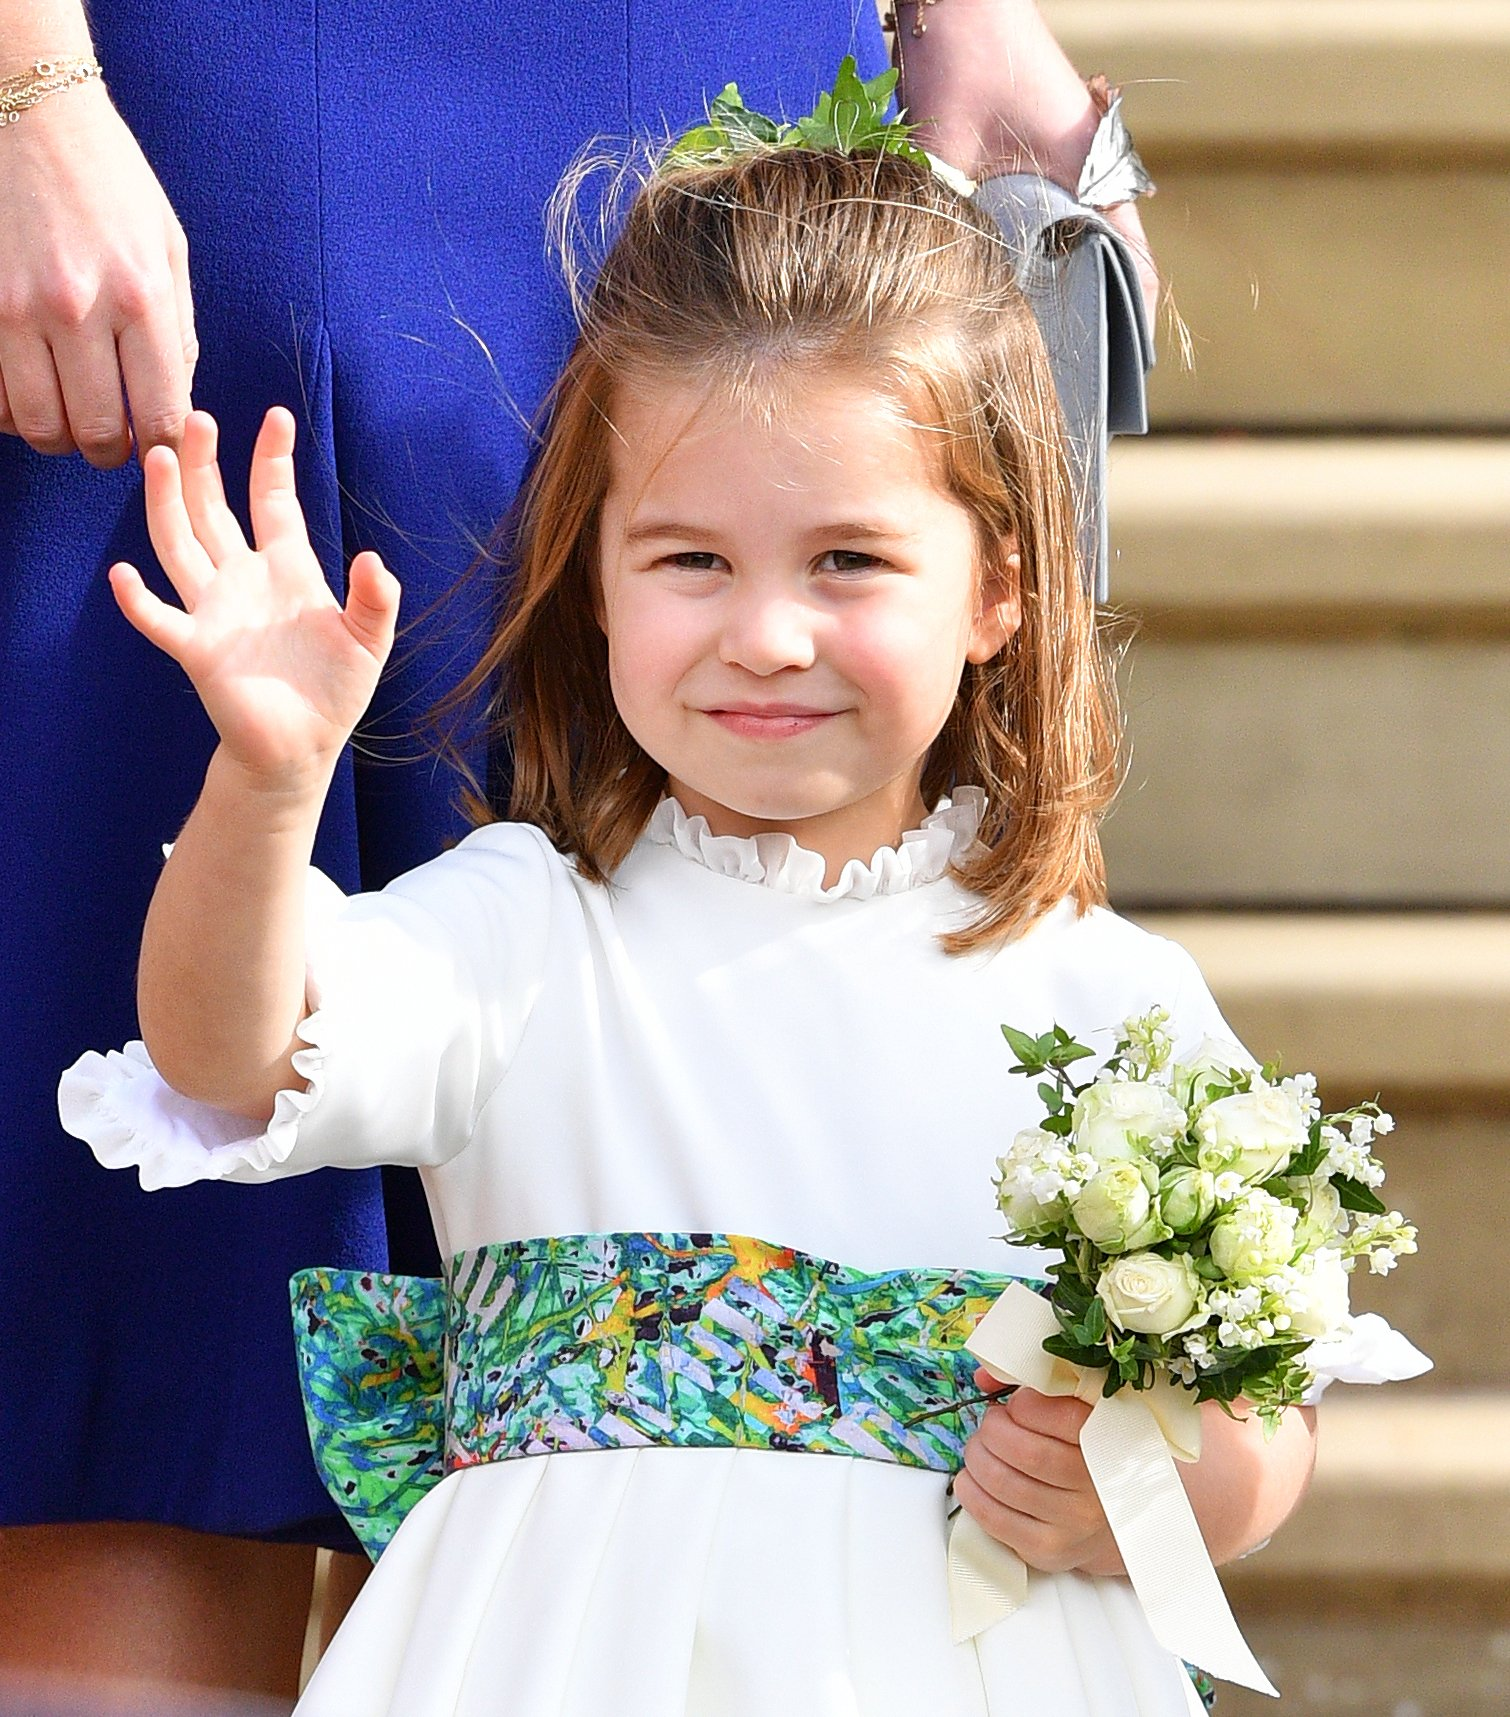 Princess Charlotte pictured at the wedding of Princess Eugenie of York and Jack Brooksbank at St George's Chapel, 2018, England. | Photo: Getty Images